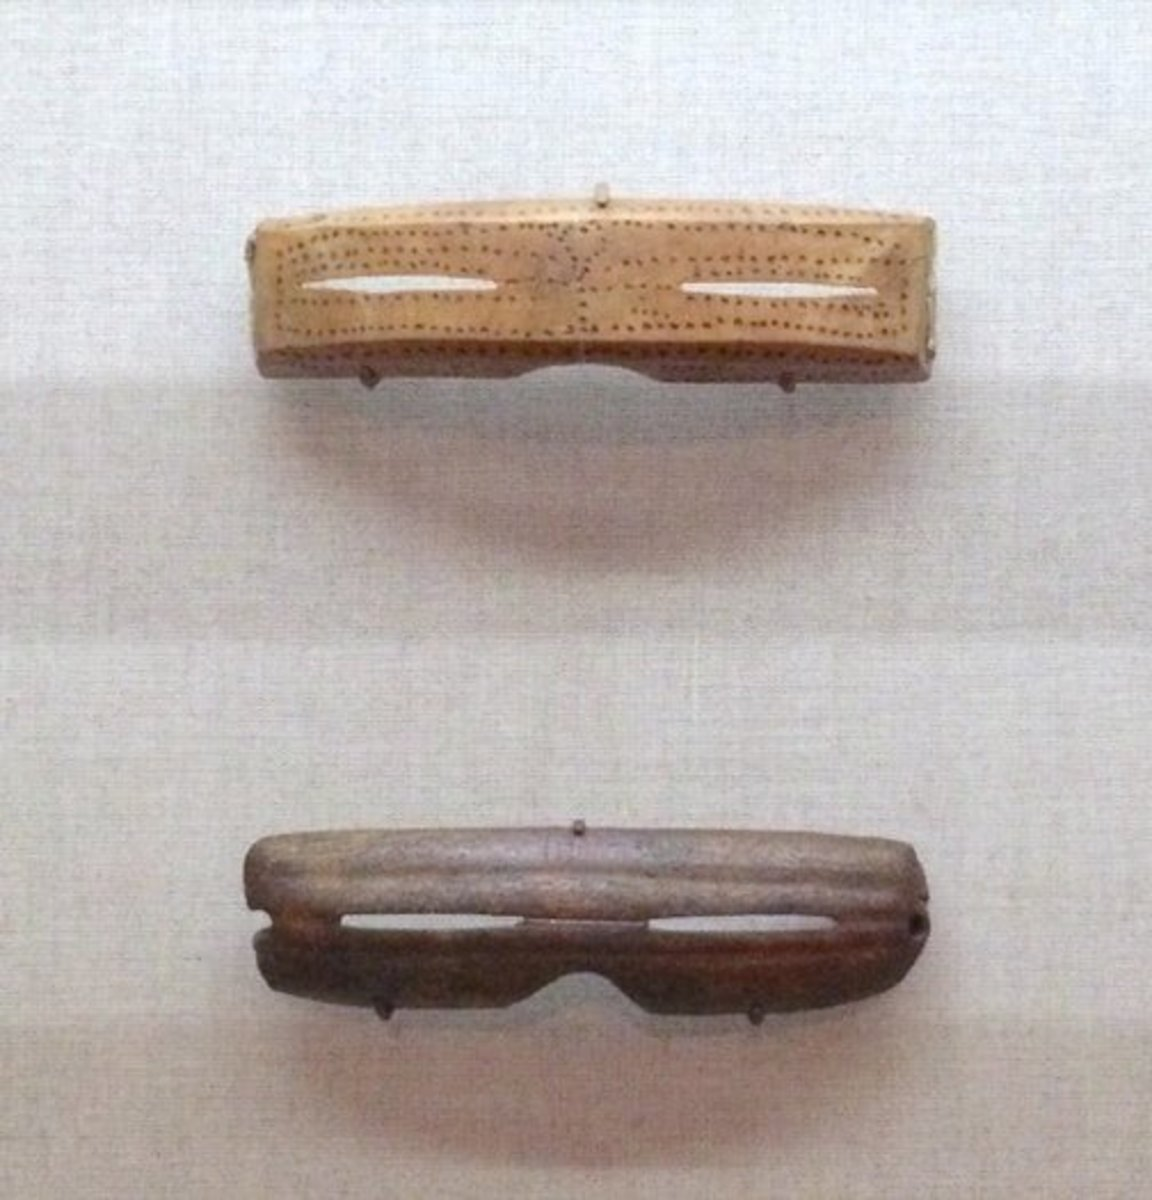 Snow goggles made by Arctic people to prevent snow blindness featured narrow slits to help the wearer avoid distracting light and improve vision. Slit pupils work the same way.